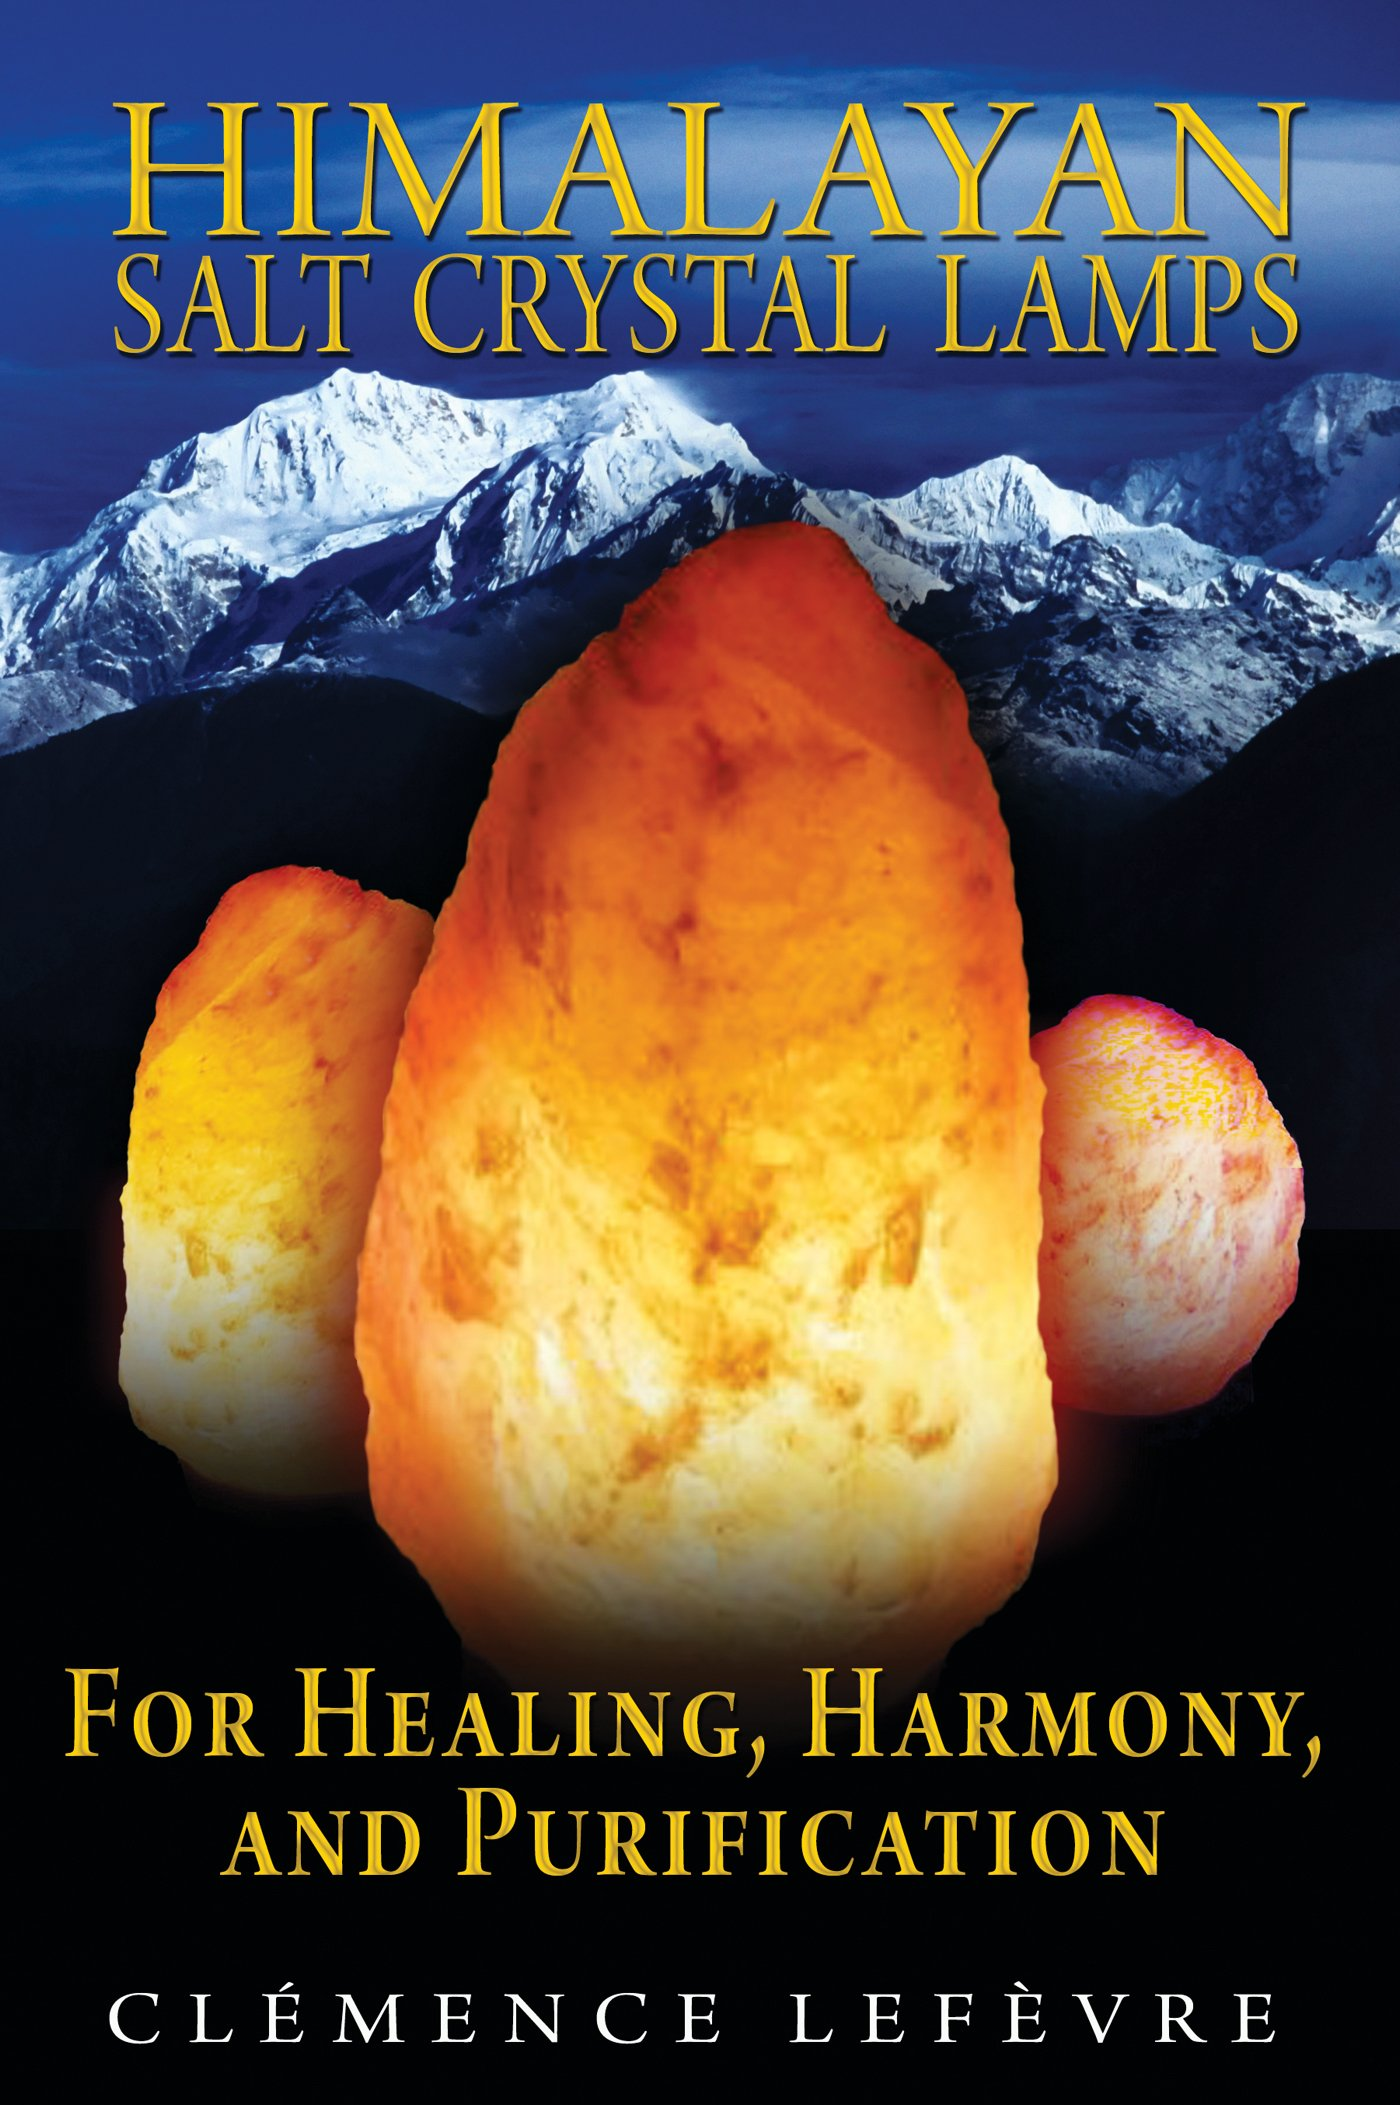 himalayan salt crystal lamps for healing harmony and